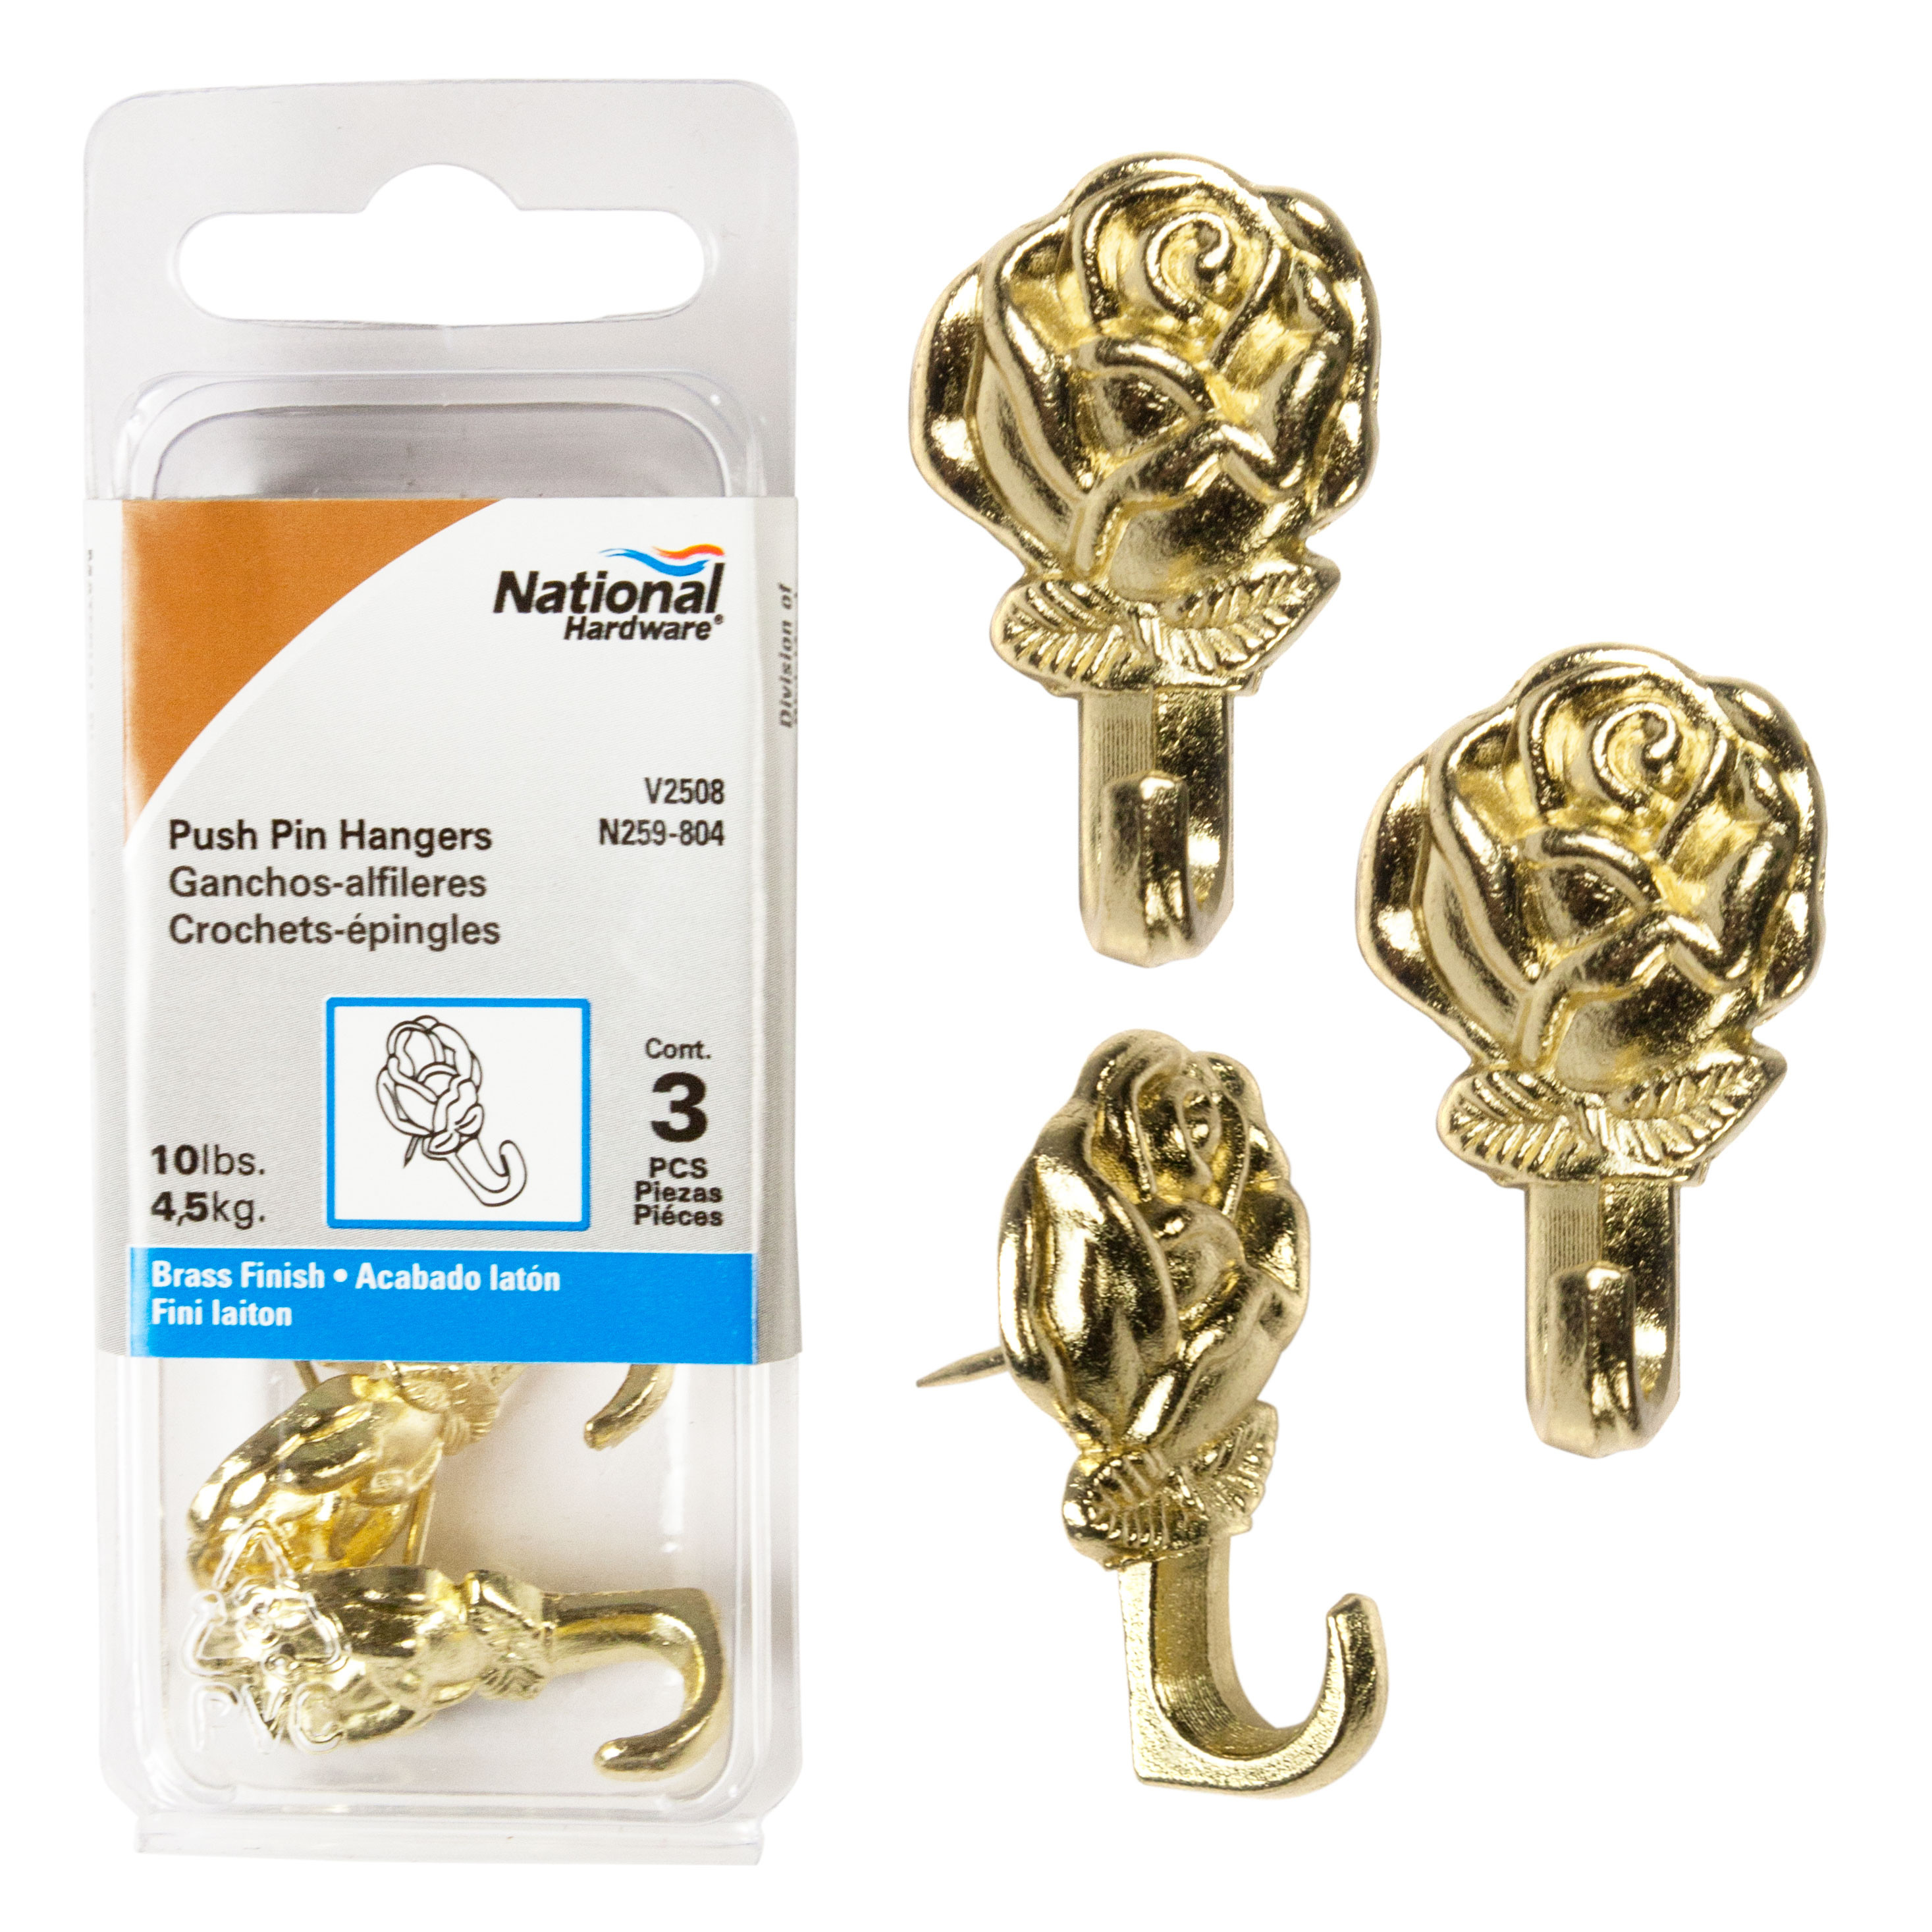 National Hardware N259 804 Decorative Rose Push Pin Picture Hangers Polished Brass 3 Pack